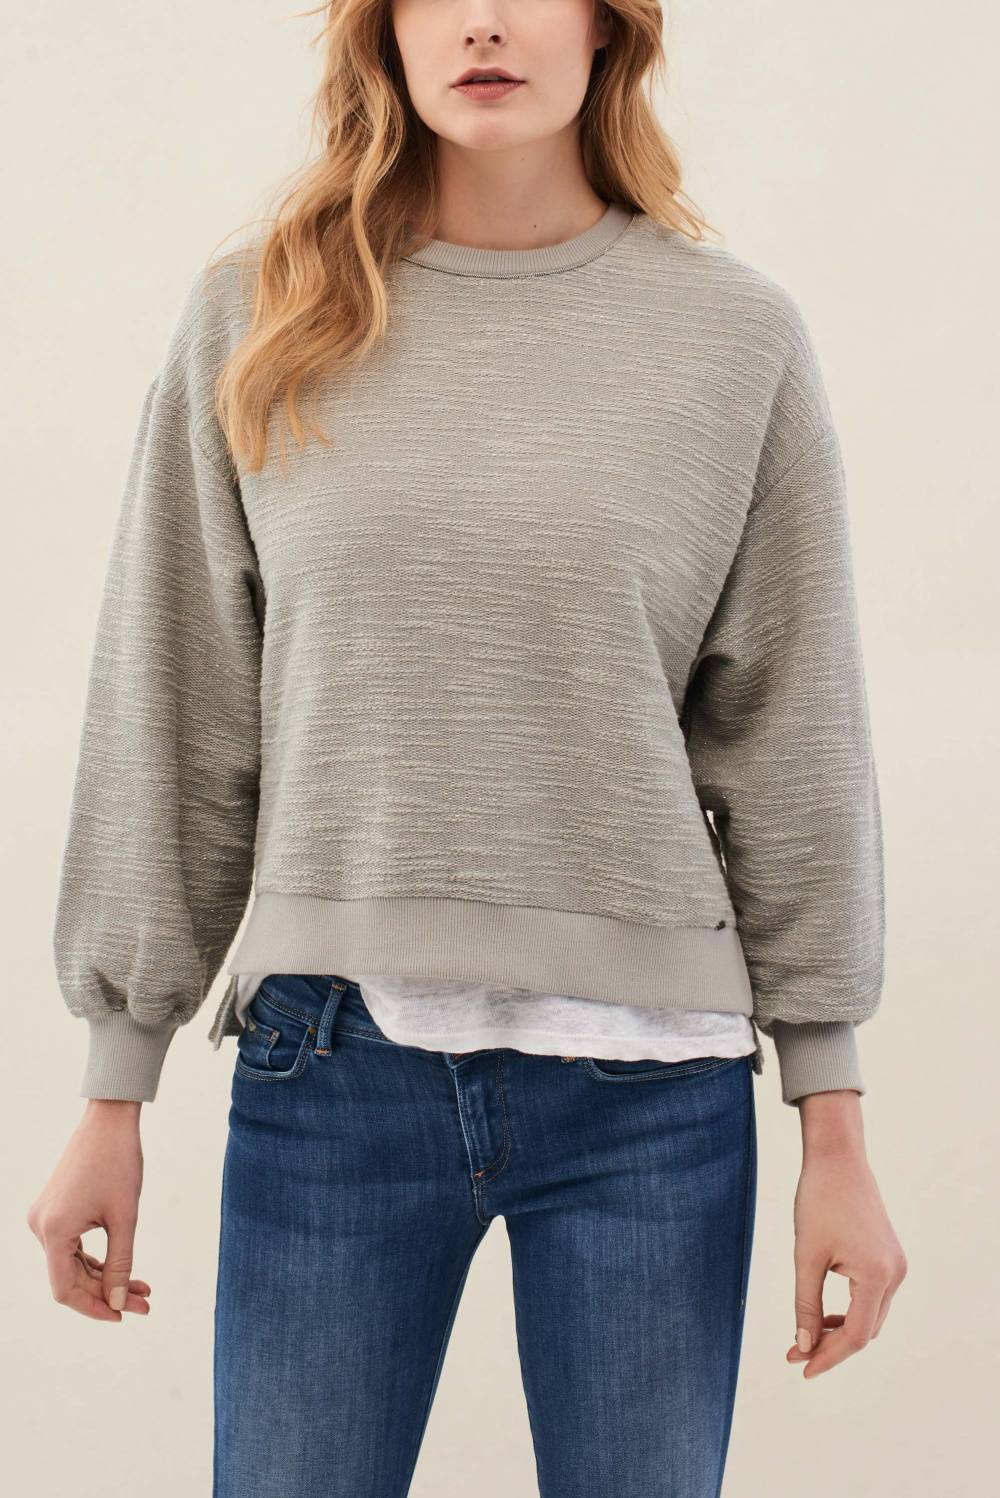 Textured knit sweater - Salsa